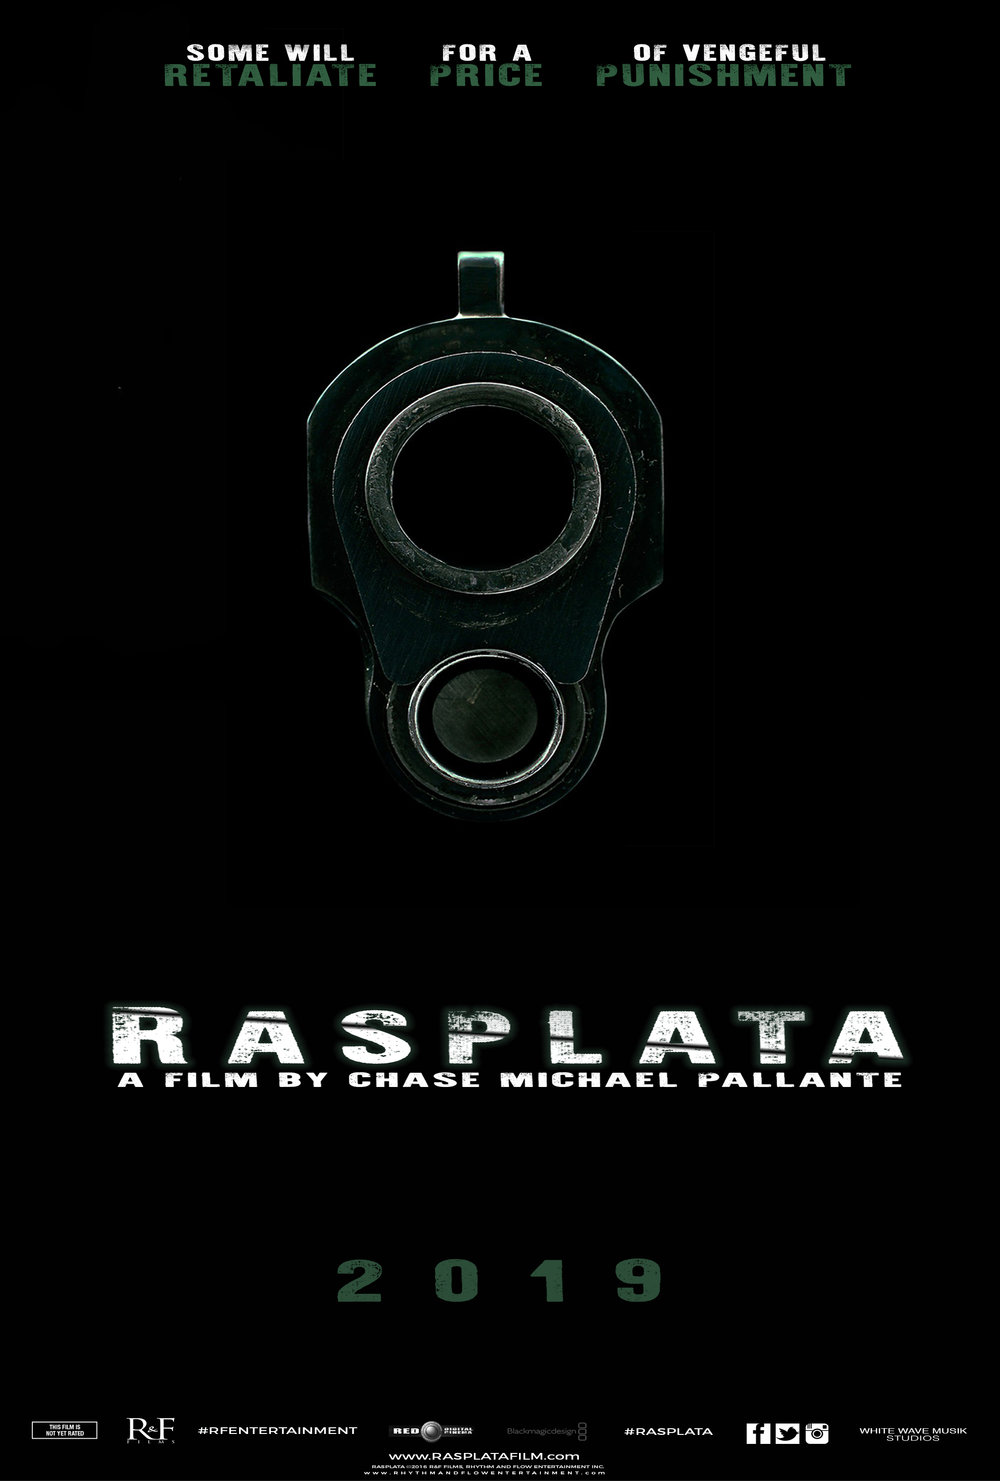 RASPLATA OFFICIAL TEASER MOVIE POSTER RFE RFENTERTAINMENT